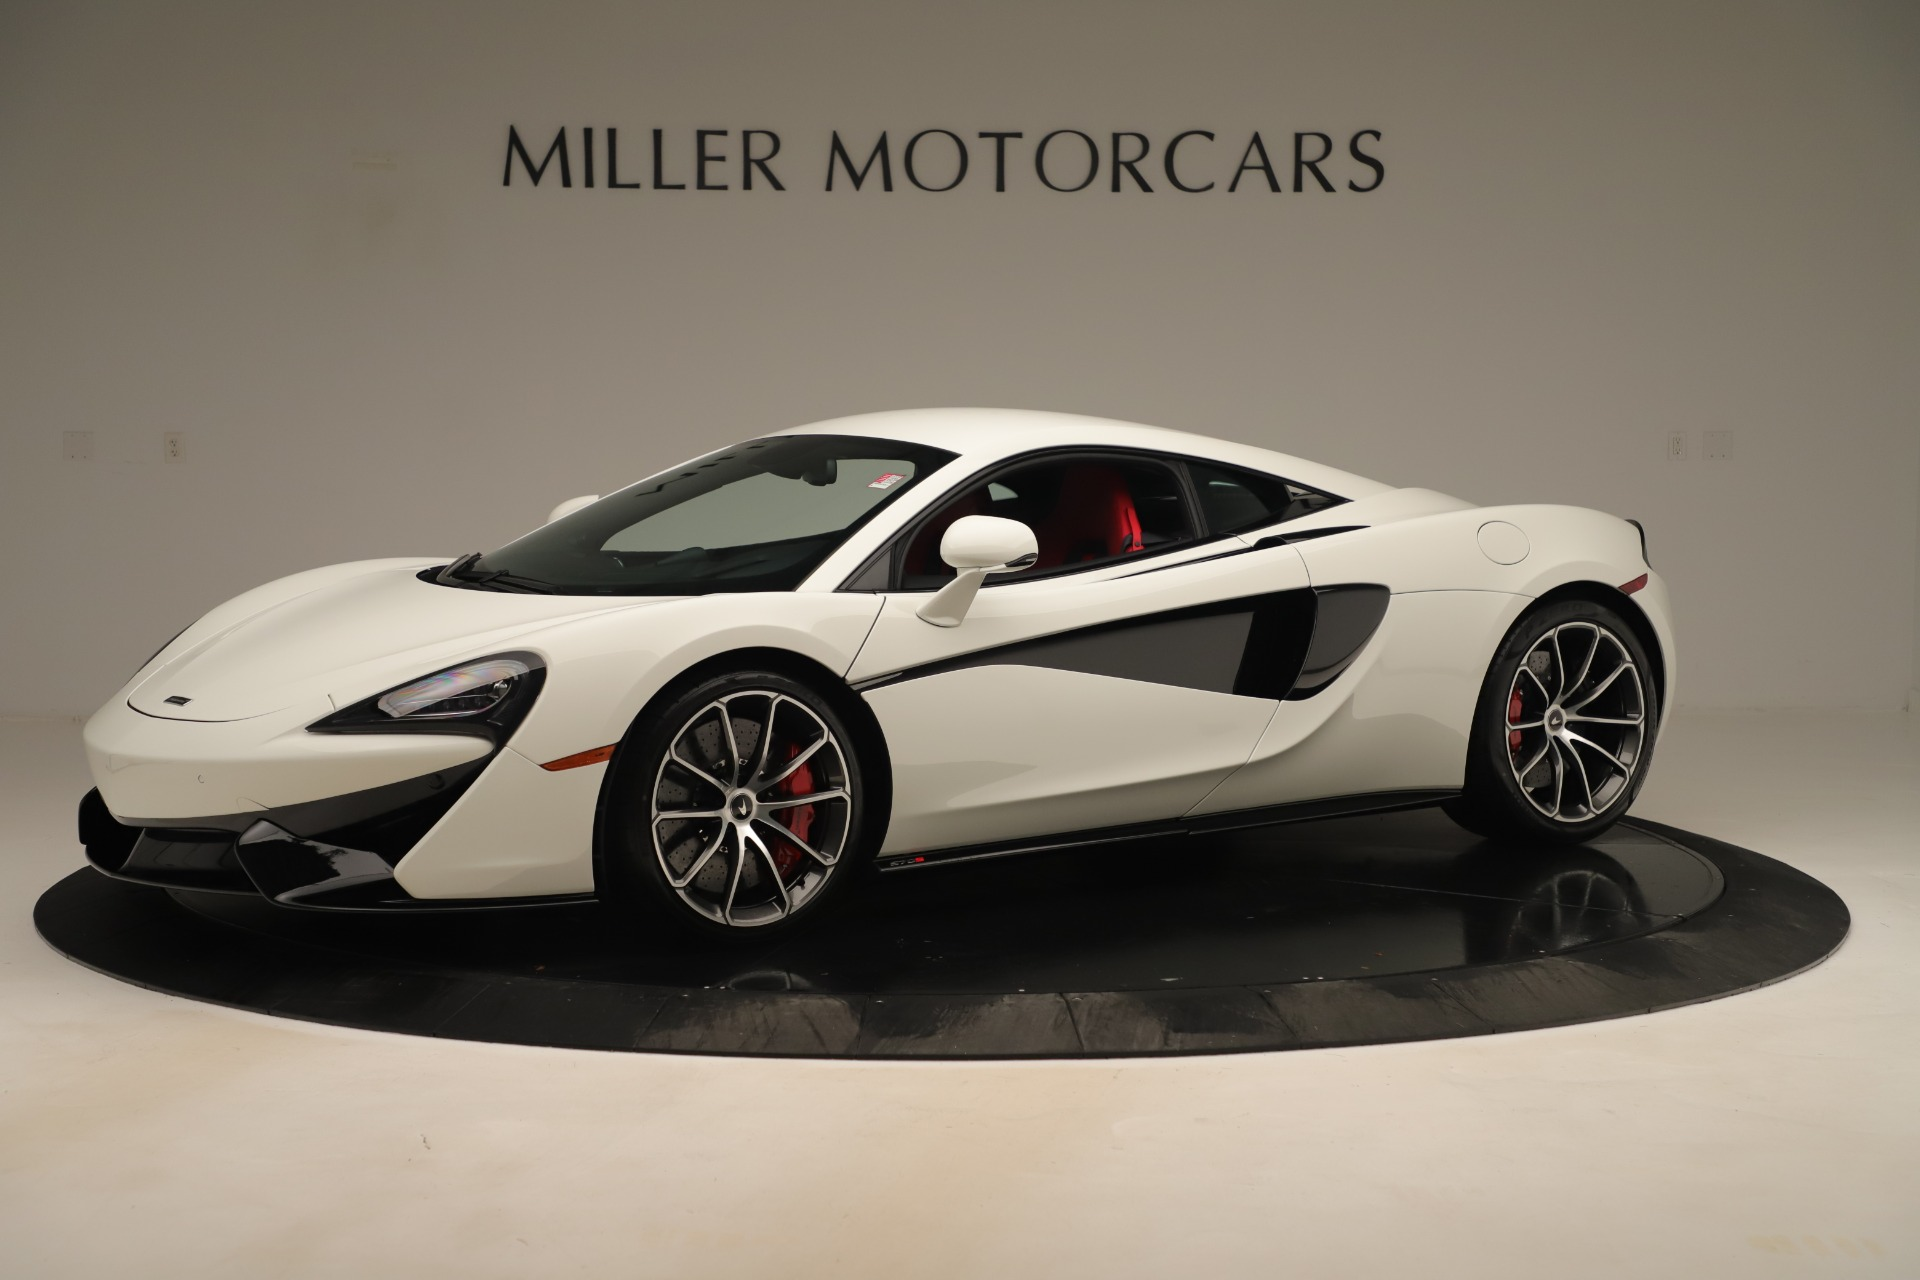 New 2020 McLaren 570S Coupe for sale $215,600 at Bentley Greenwich in Greenwich CT 06830 1